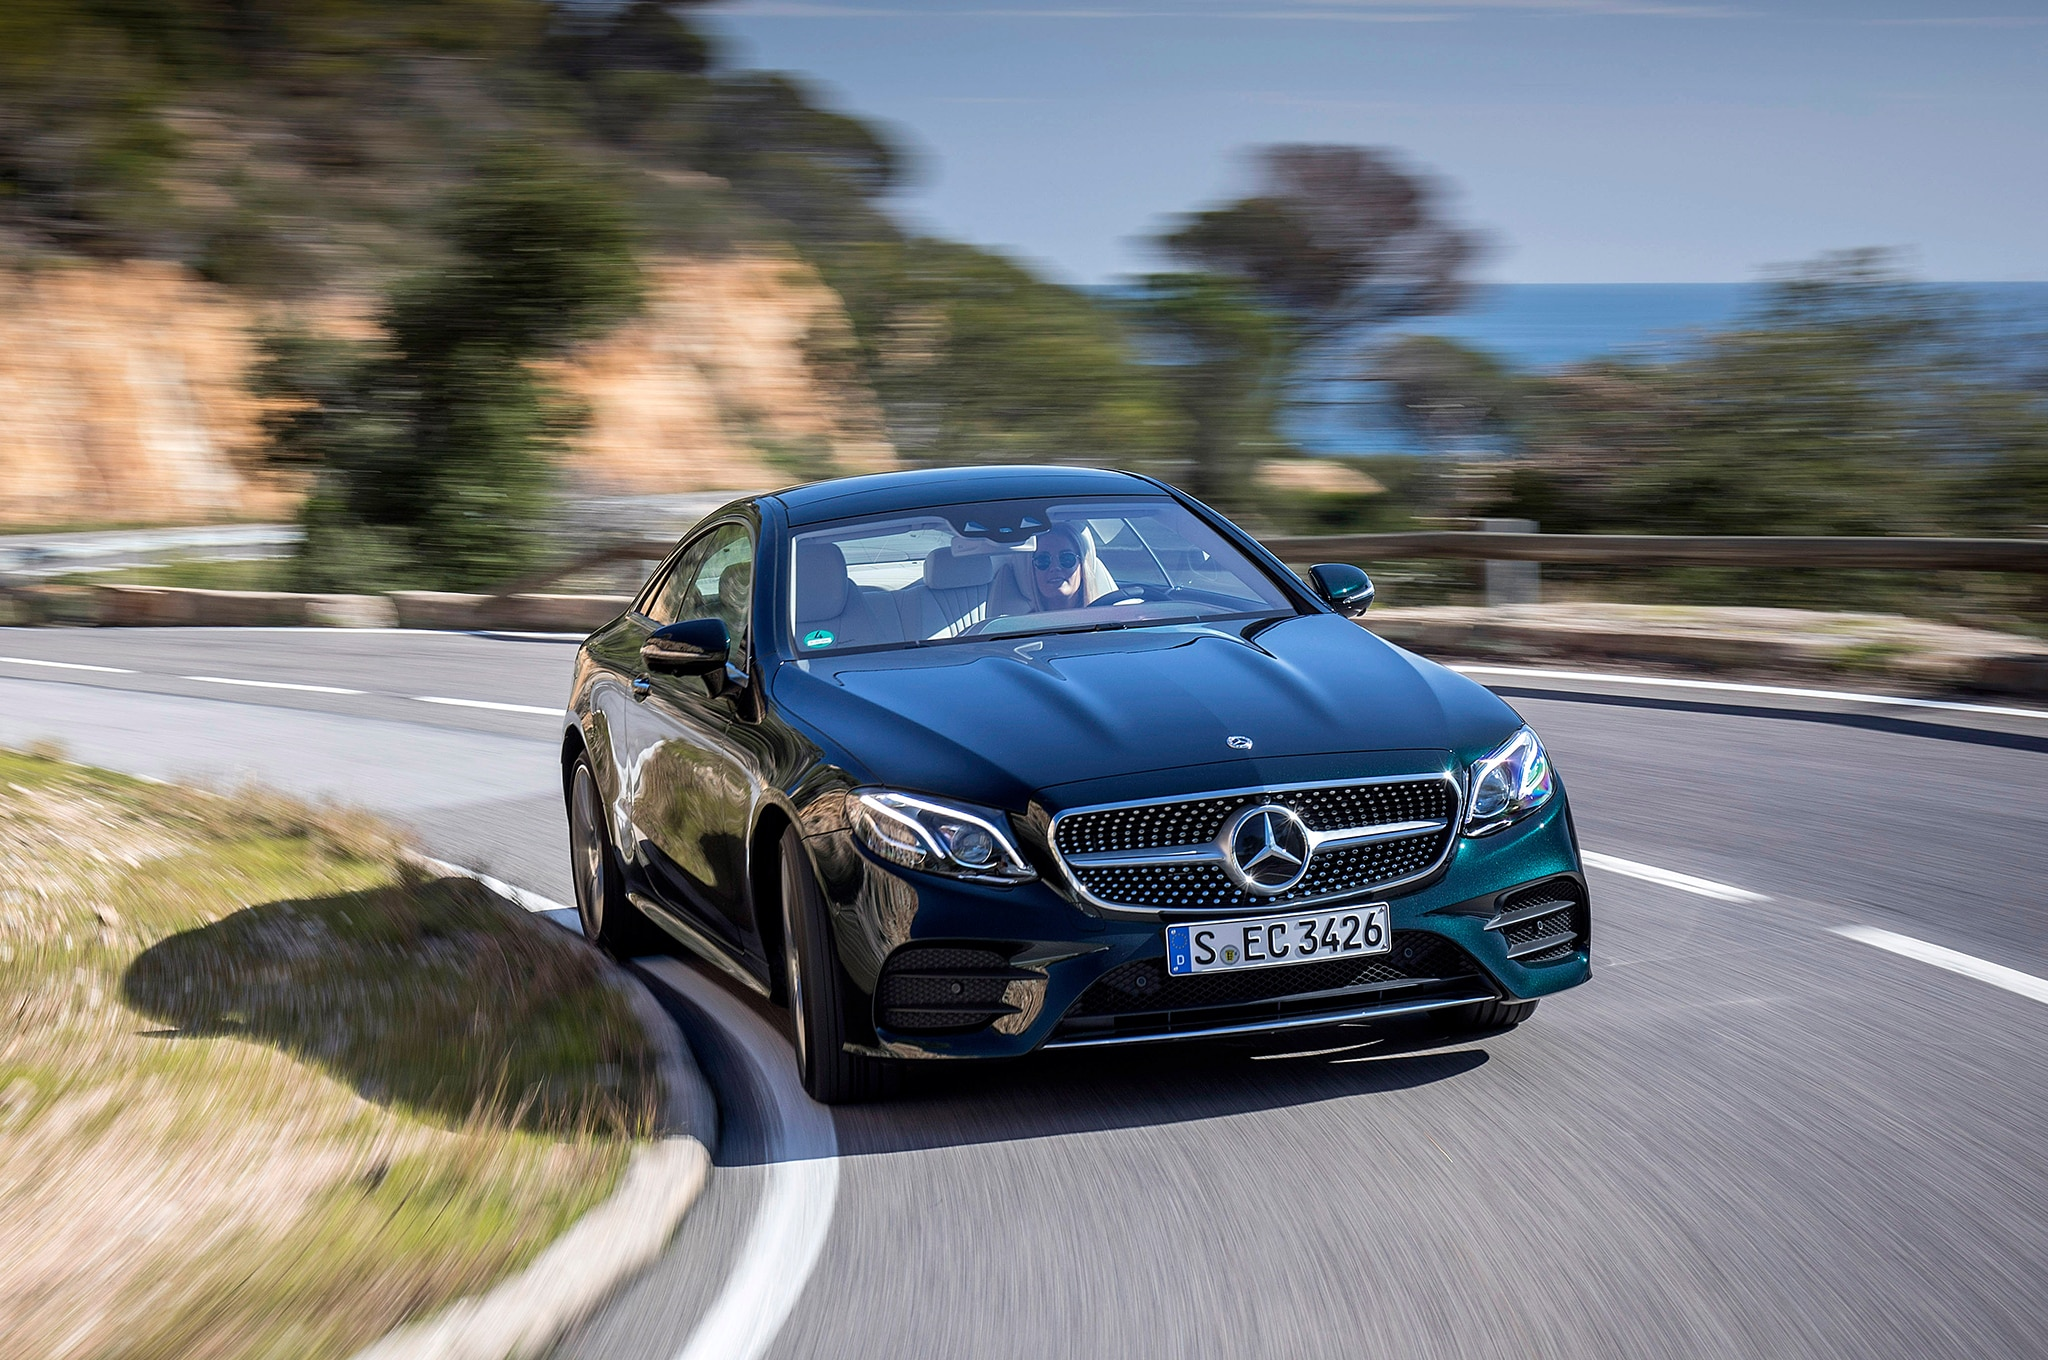 2018 Mercedes Benz E400 4MATIC Coupe Front Three Quarter In Motion 08